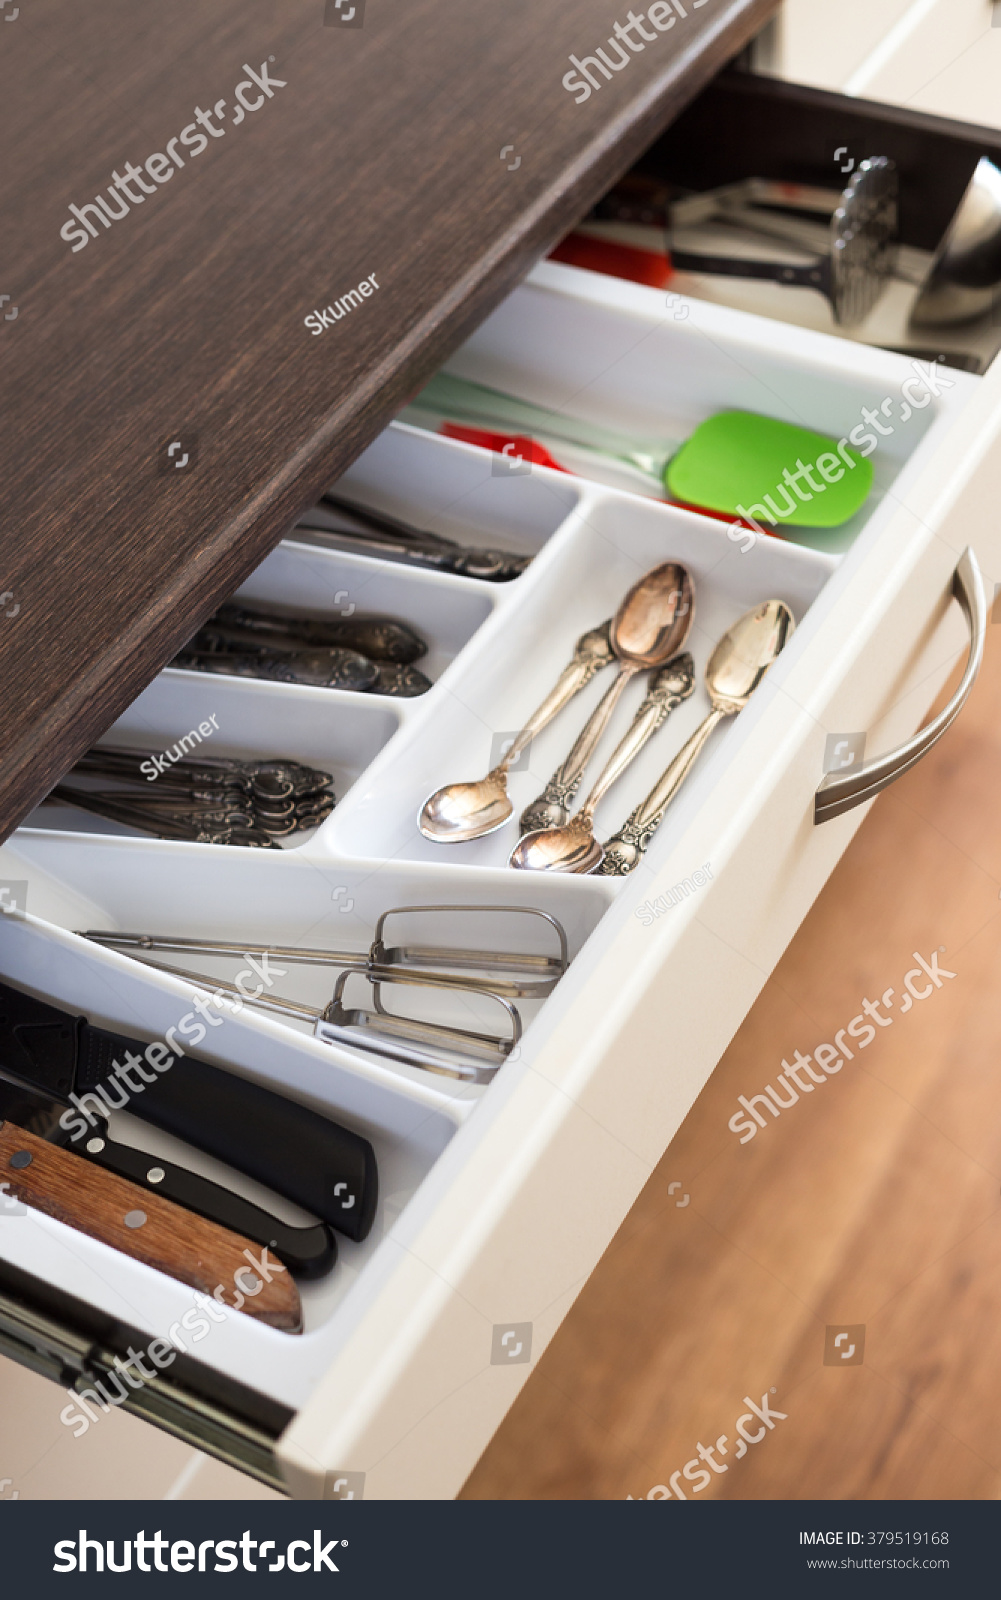 Spoons Forks And Knives In Cutlery Box Drawer Kitchen Cupboard